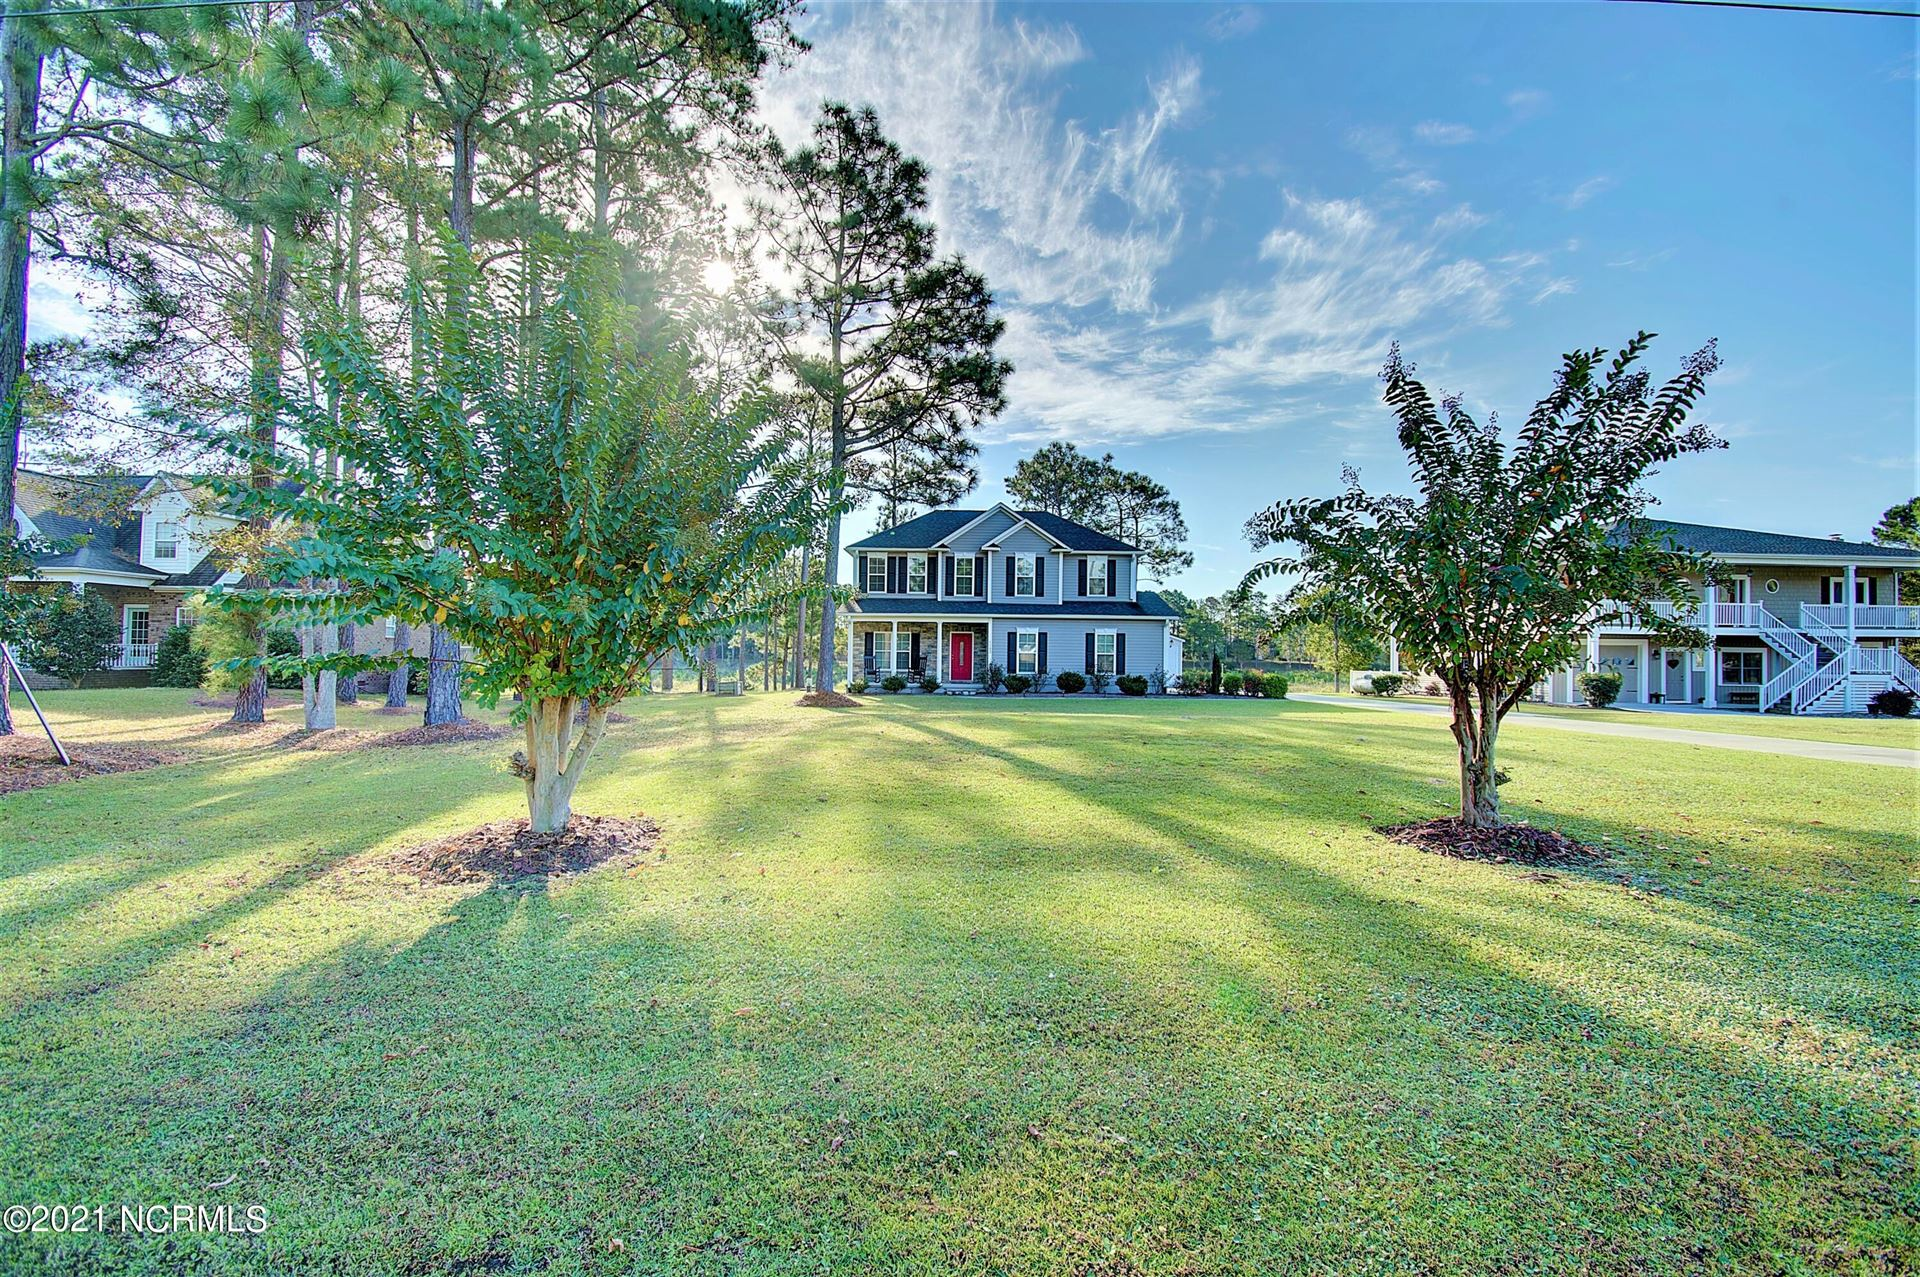 Photo of 1102 N Shore Drive, Southport, NC 28461 (MLS # 100295091)